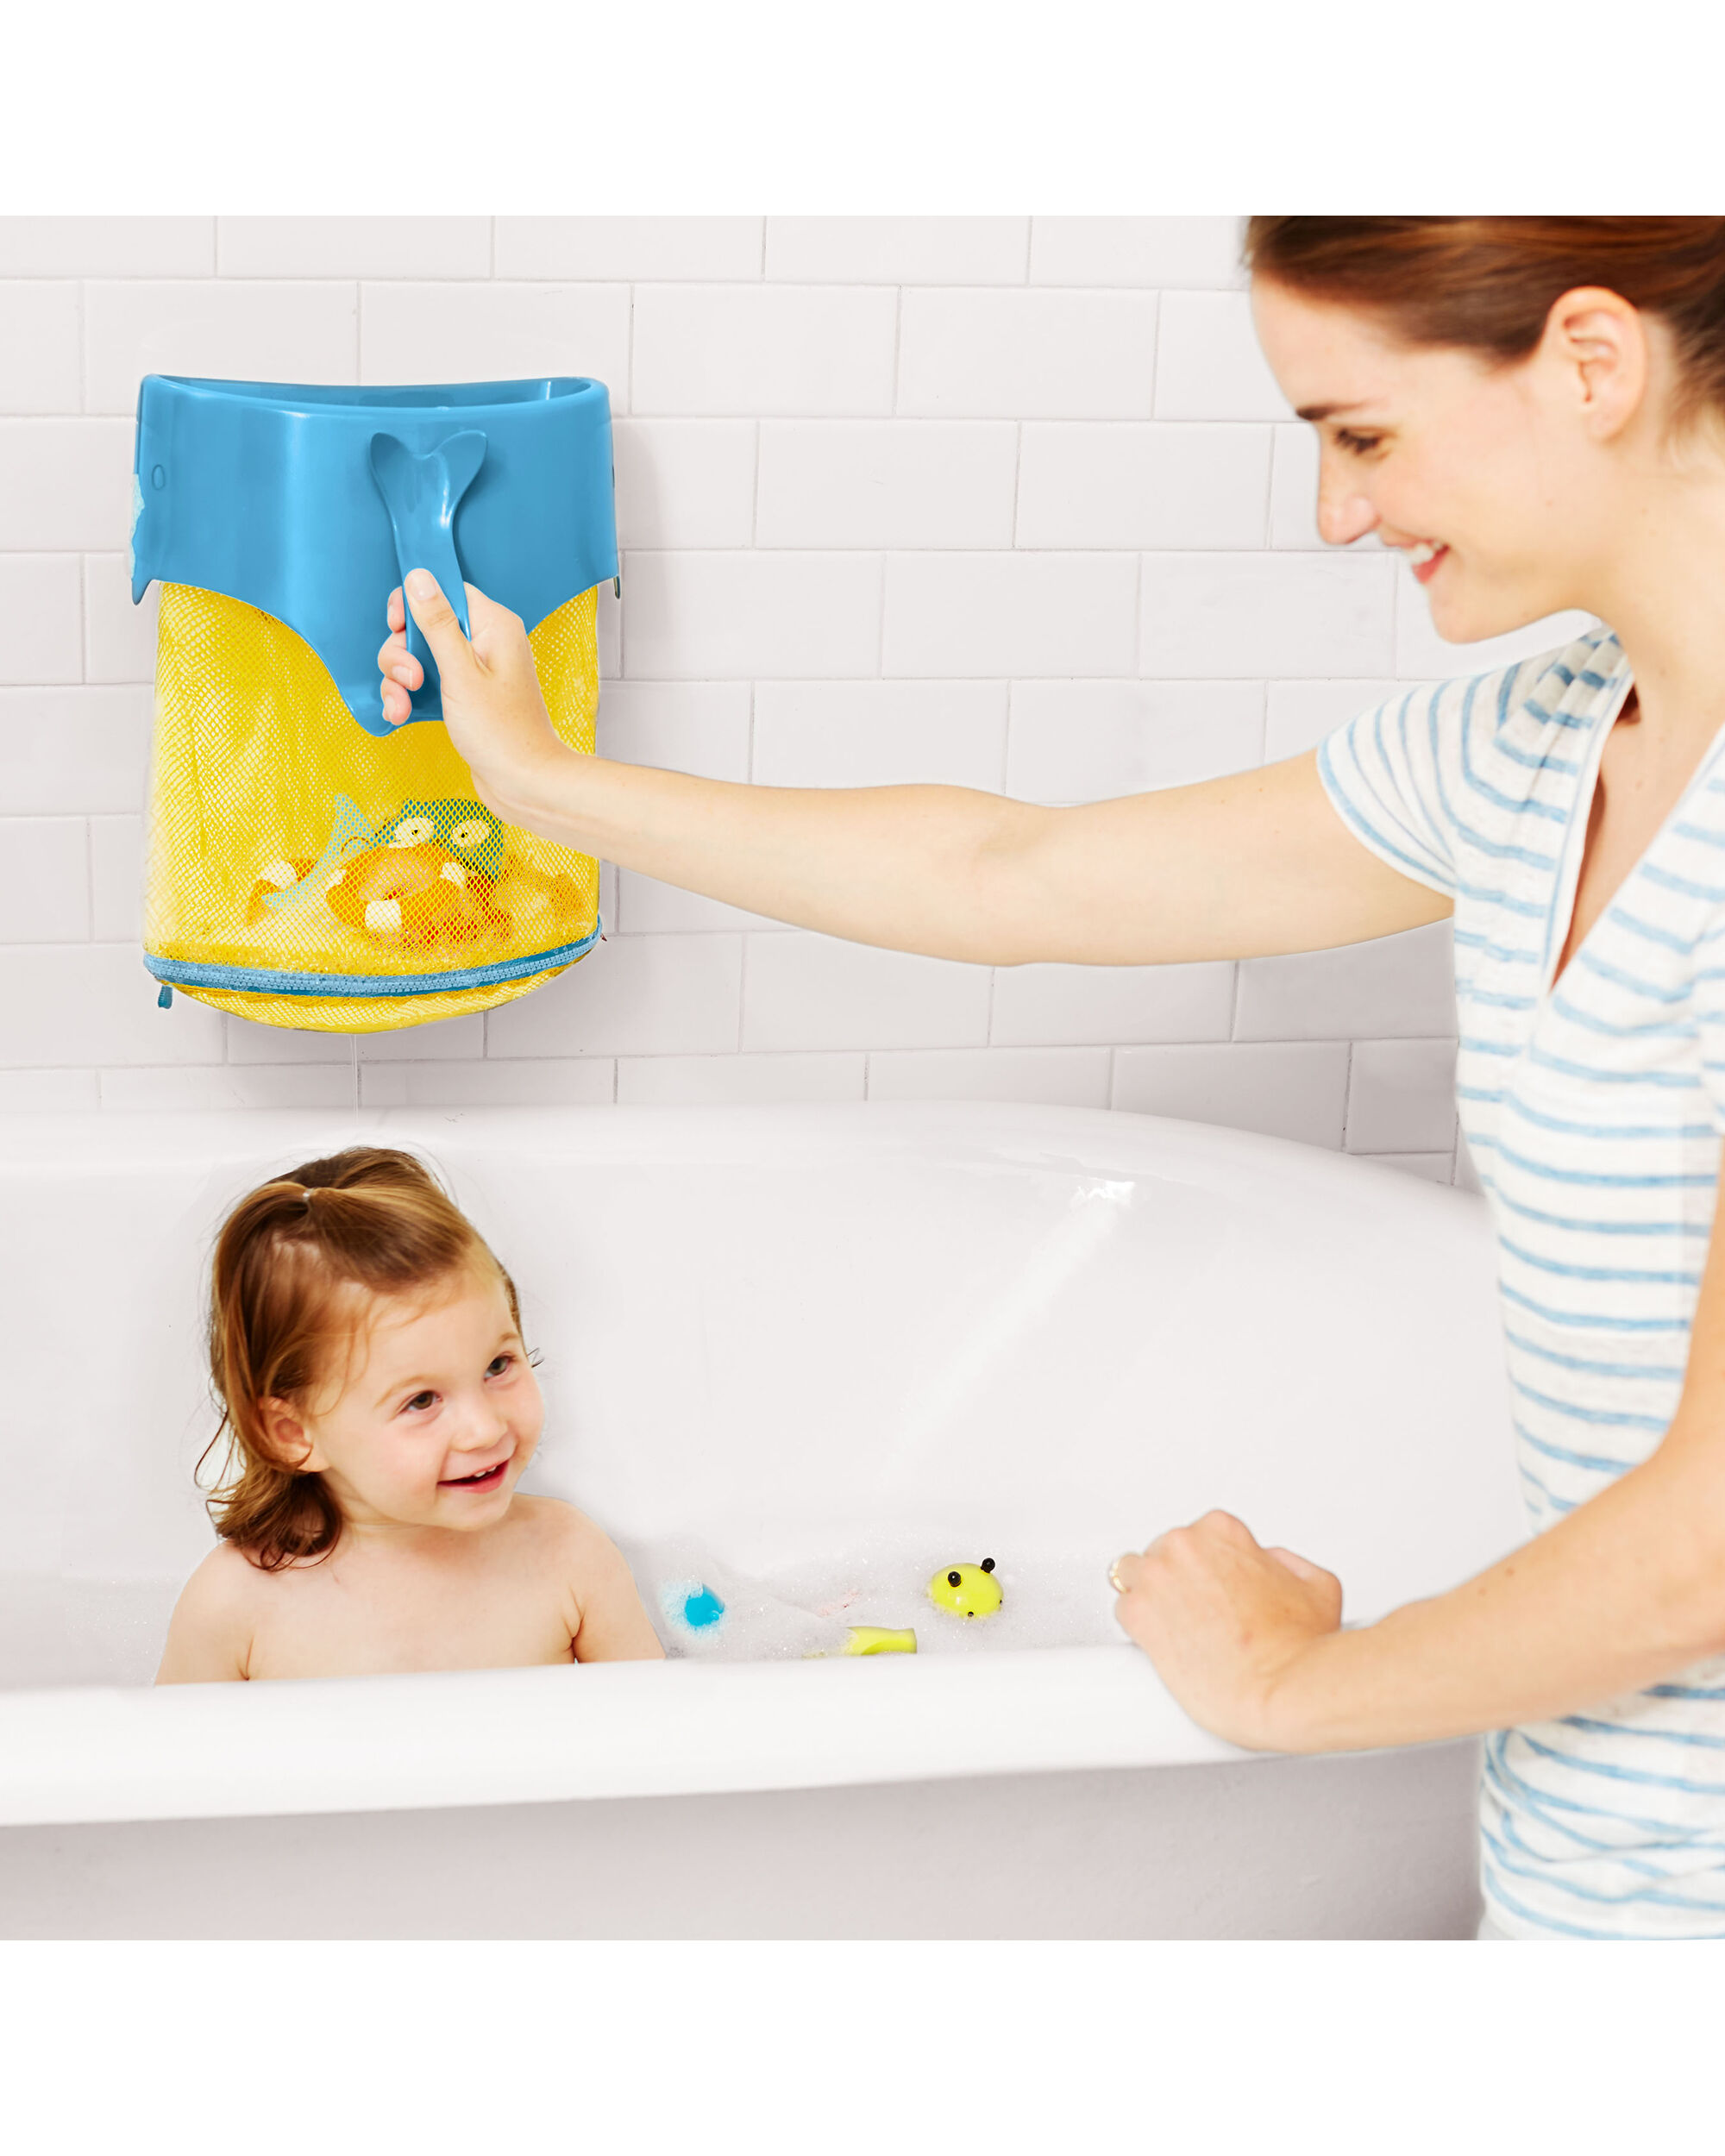 Moby Scoop & Splash Bath Toy Organizer | Skiphop.com